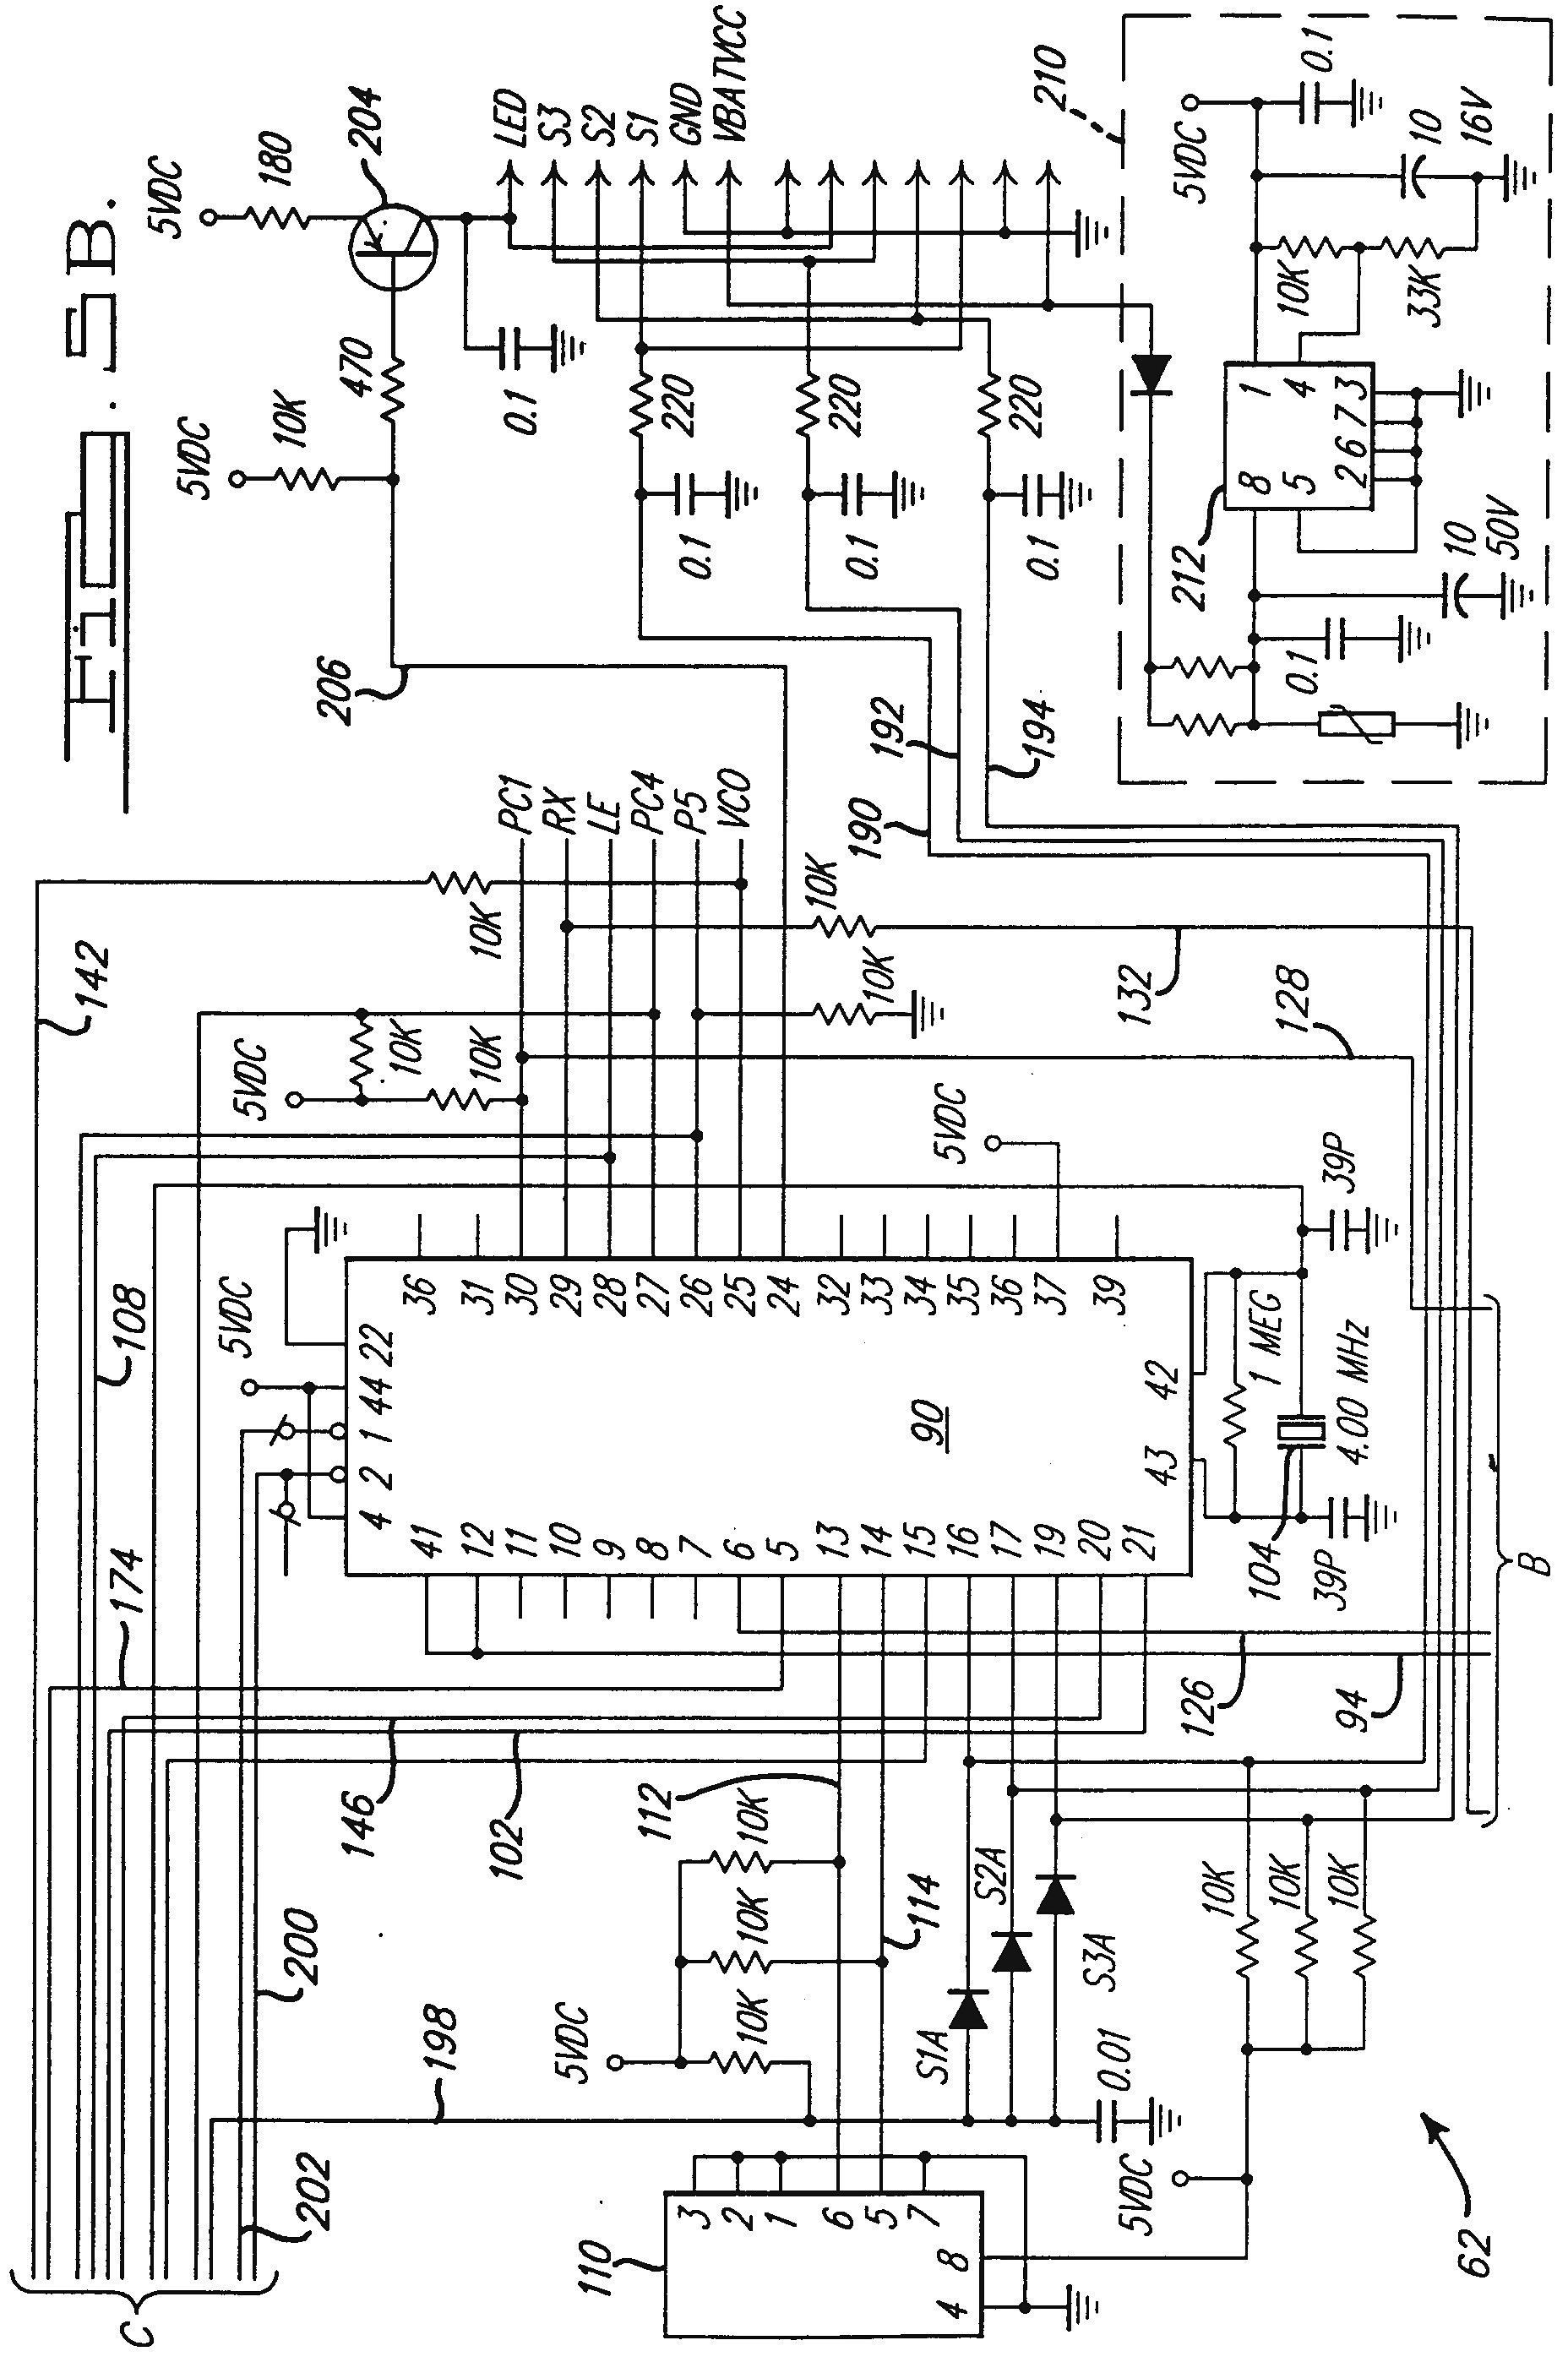 Genie Garage Door Sensor Wiring Diagram New Wiring Diagram Garage Door Opener Sensors Diagram Of Genie Garage Door Sensor Wiring Diagram Omc E250 Fpxsif Wiring Diagram Wiring Diagram Options